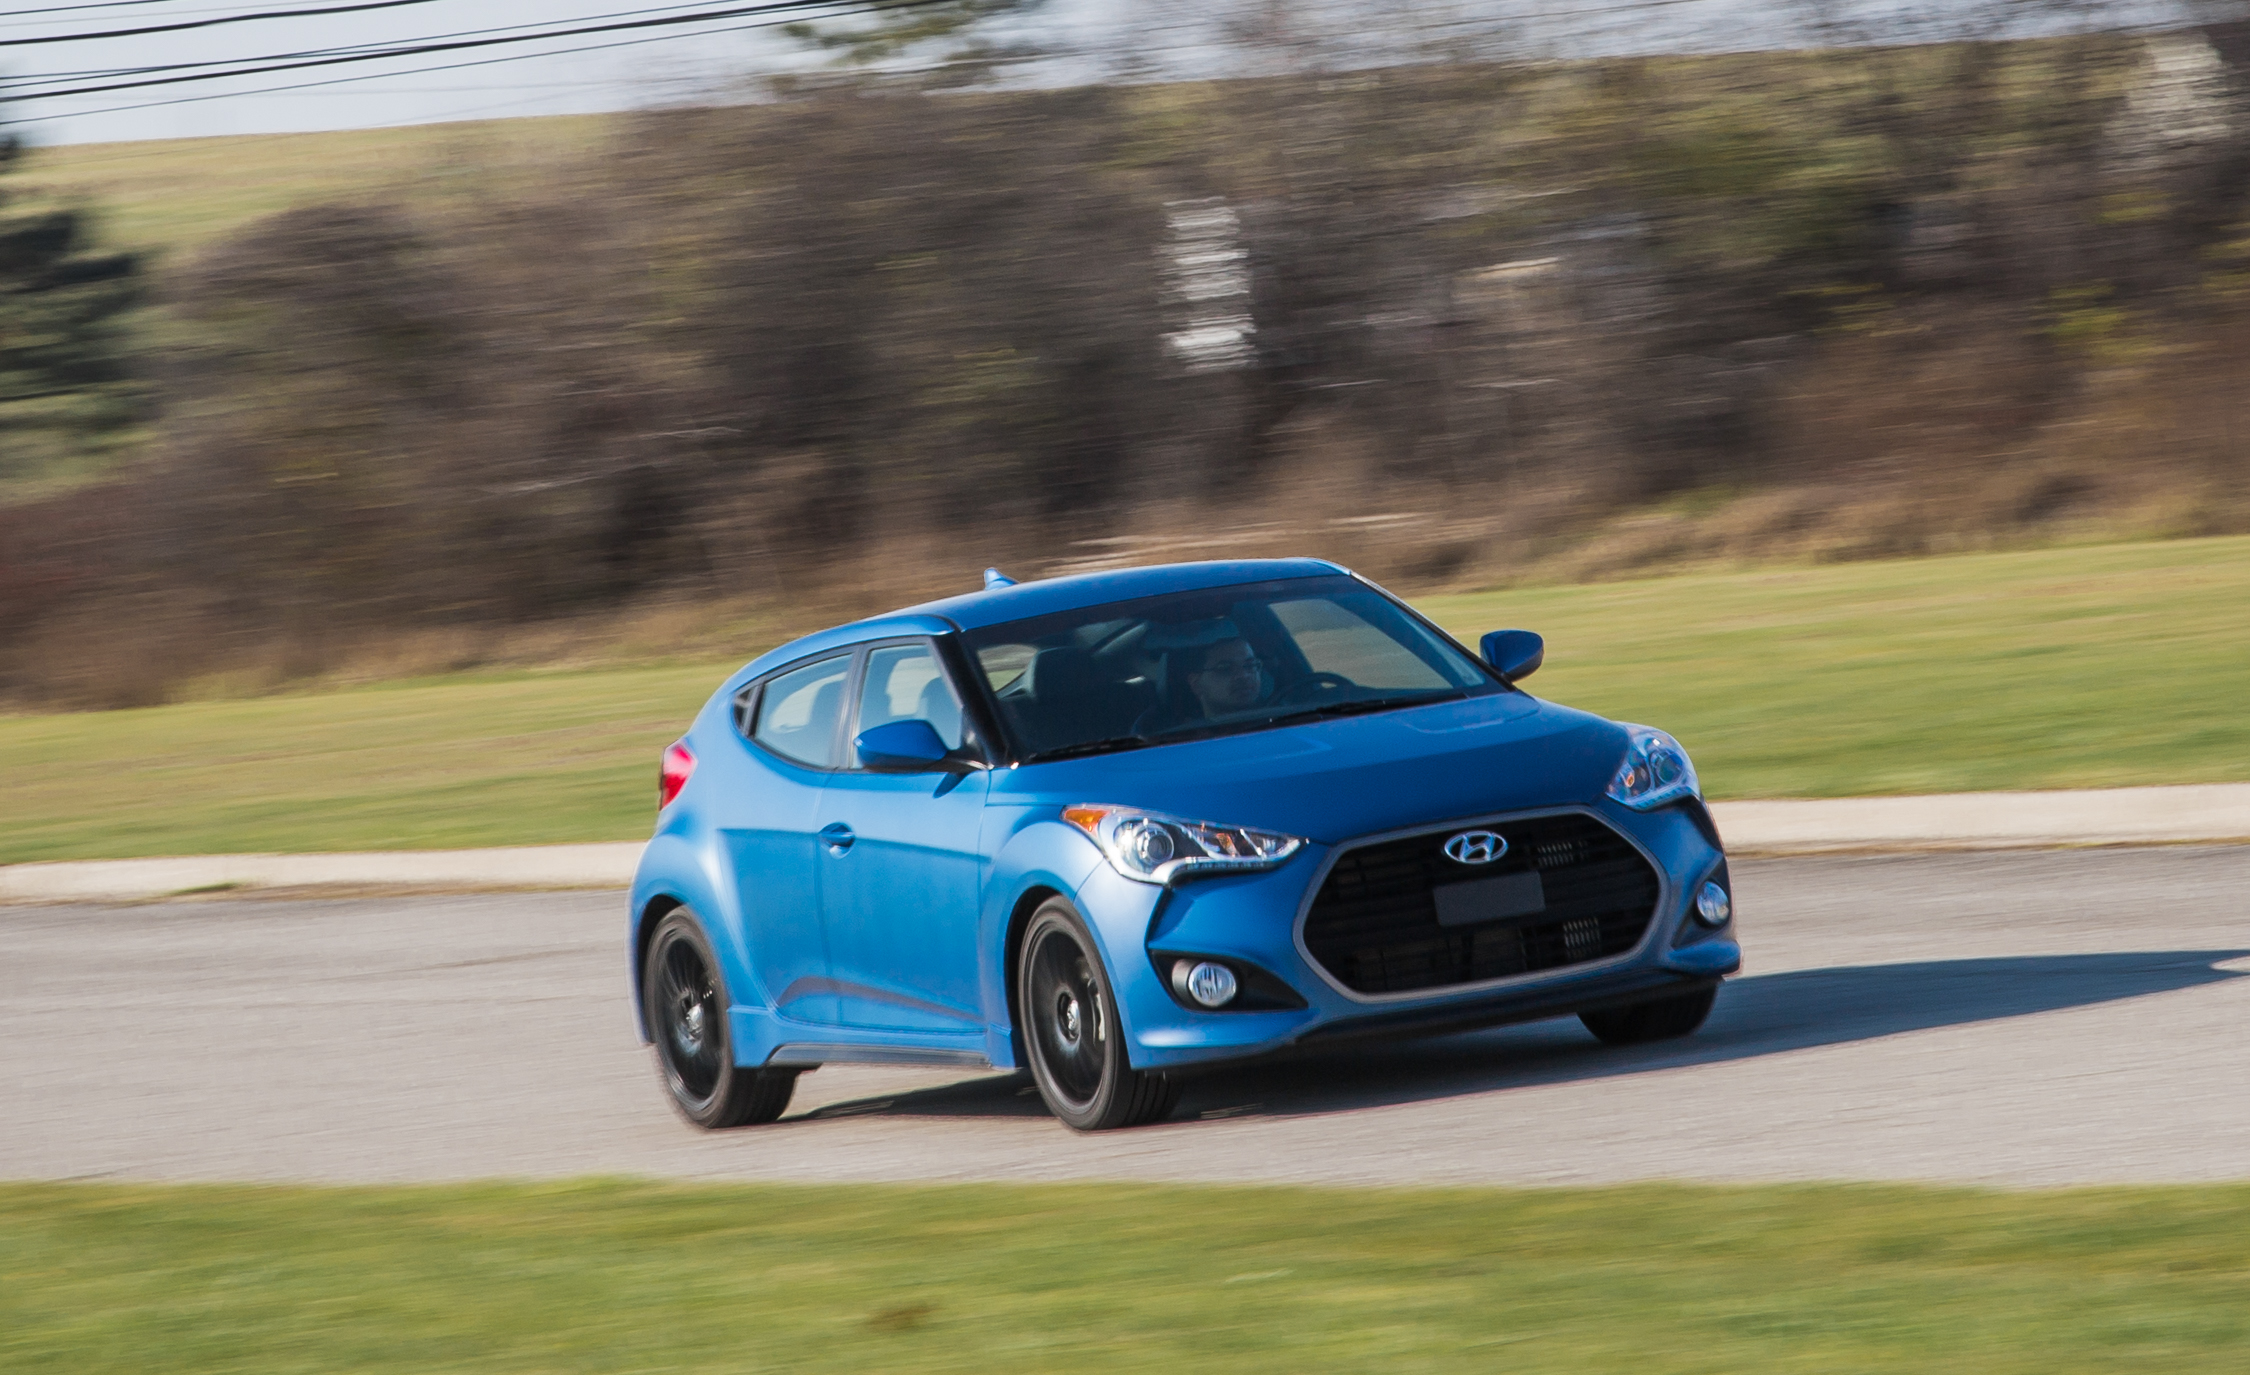 2016 hyundai veloster rally edition 1 6l turbo reviews. Black Bedroom Furniture Sets. Home Design Ideas